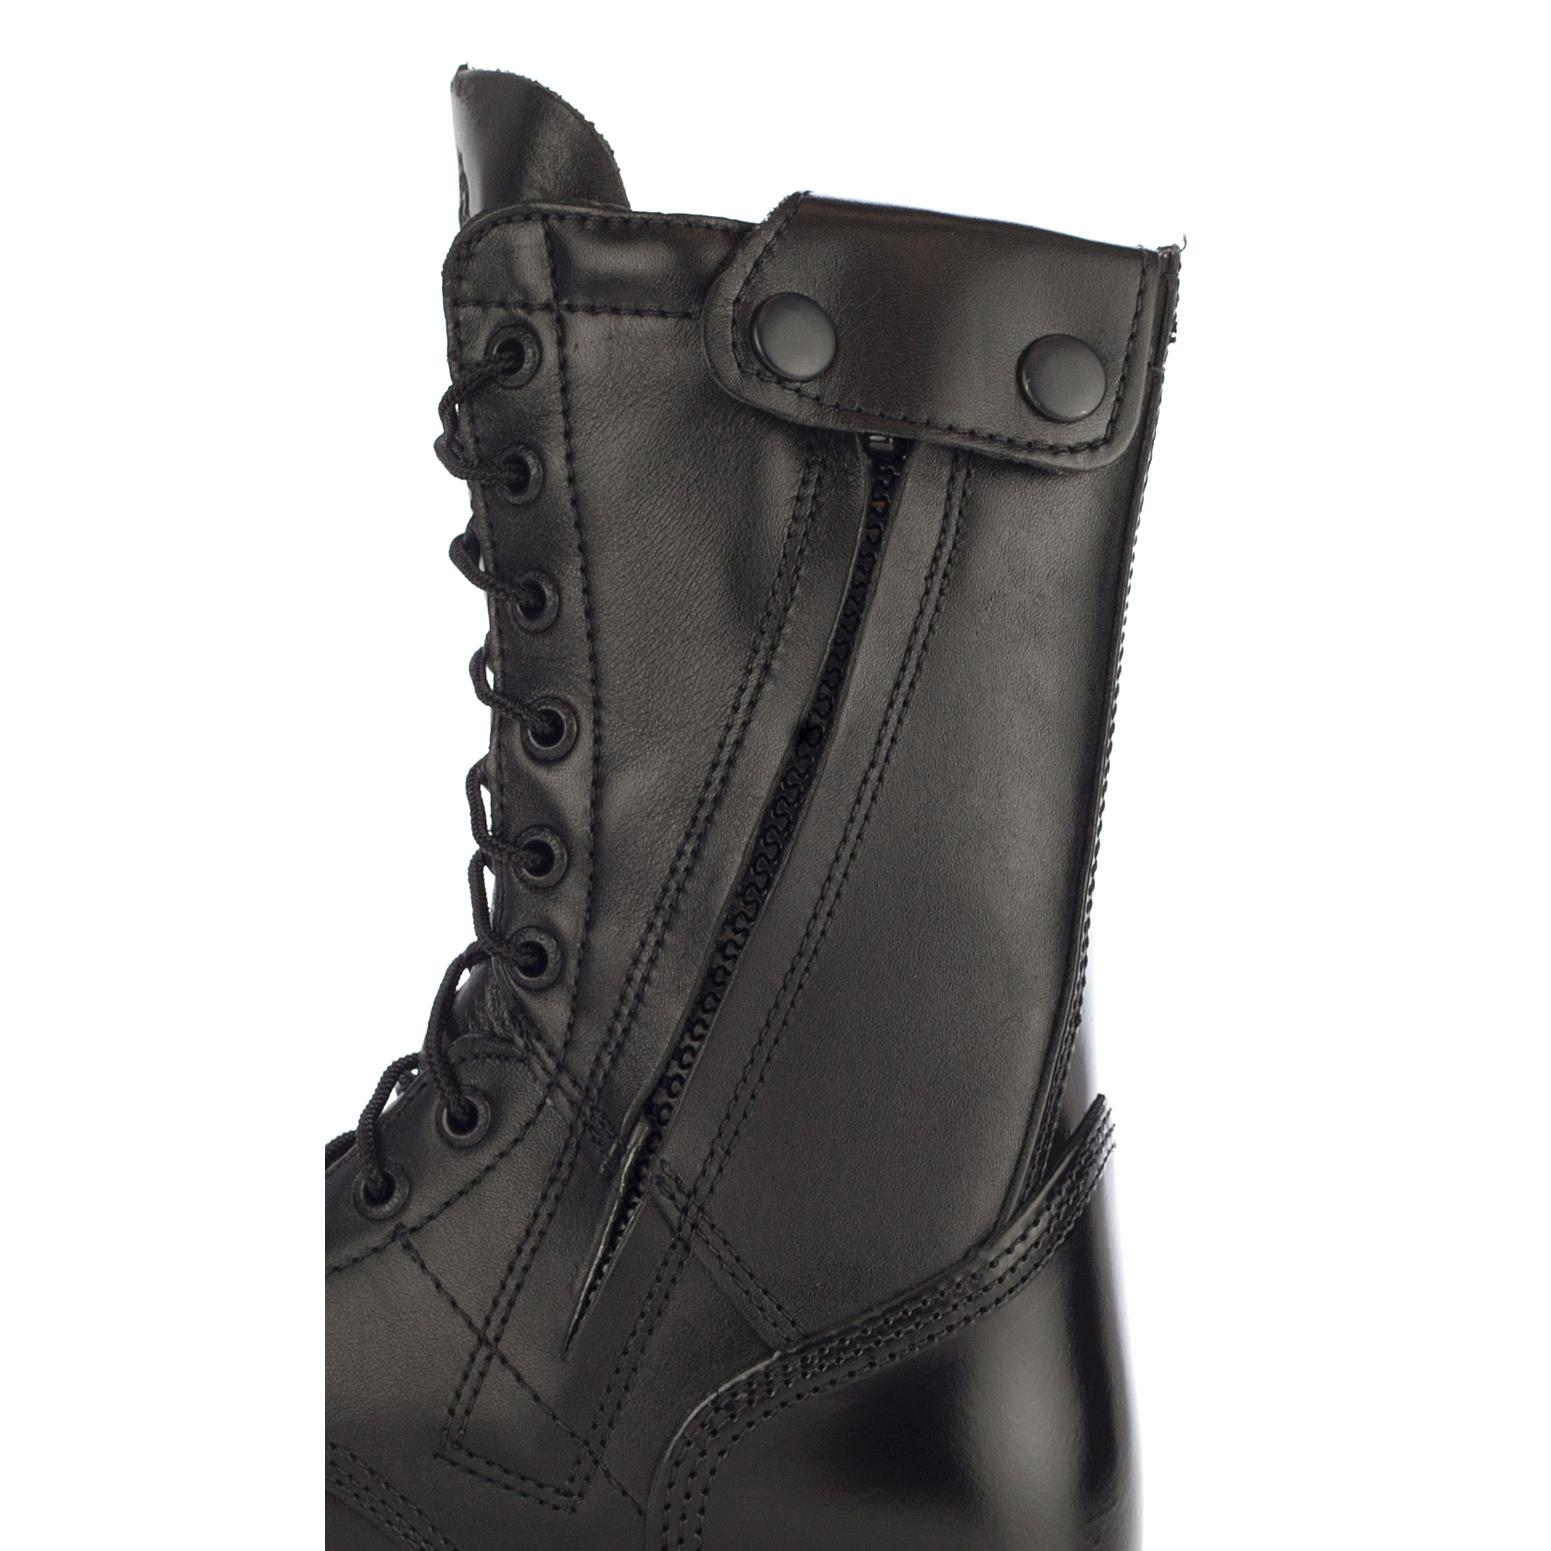 a79150cb2e3 Boots With Side Zipper - Ivoiregion